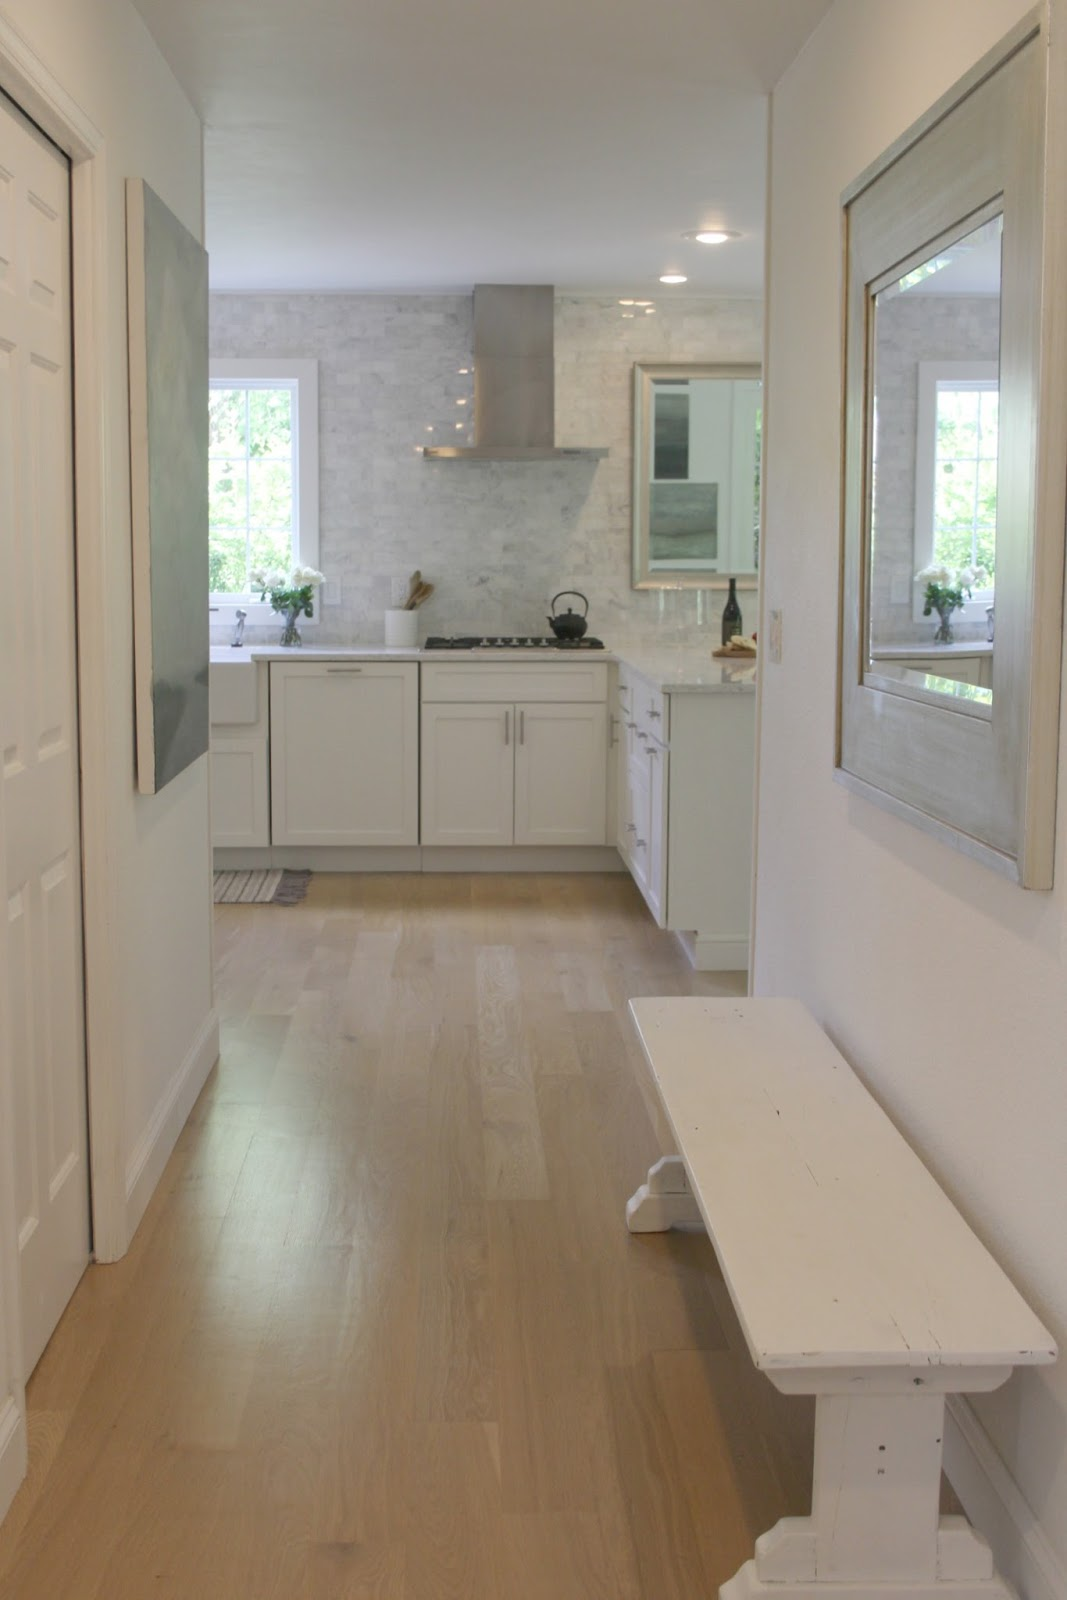 White oak hardwood floor in hall and European country inspired serene kitchen. Come see more of my home in Hello Lovely House Tour in July. #hellolovelystudio #timeless #tranquil #interiordesign #europeancountry #europeanfarmhouse #simpledecor #serenedecor